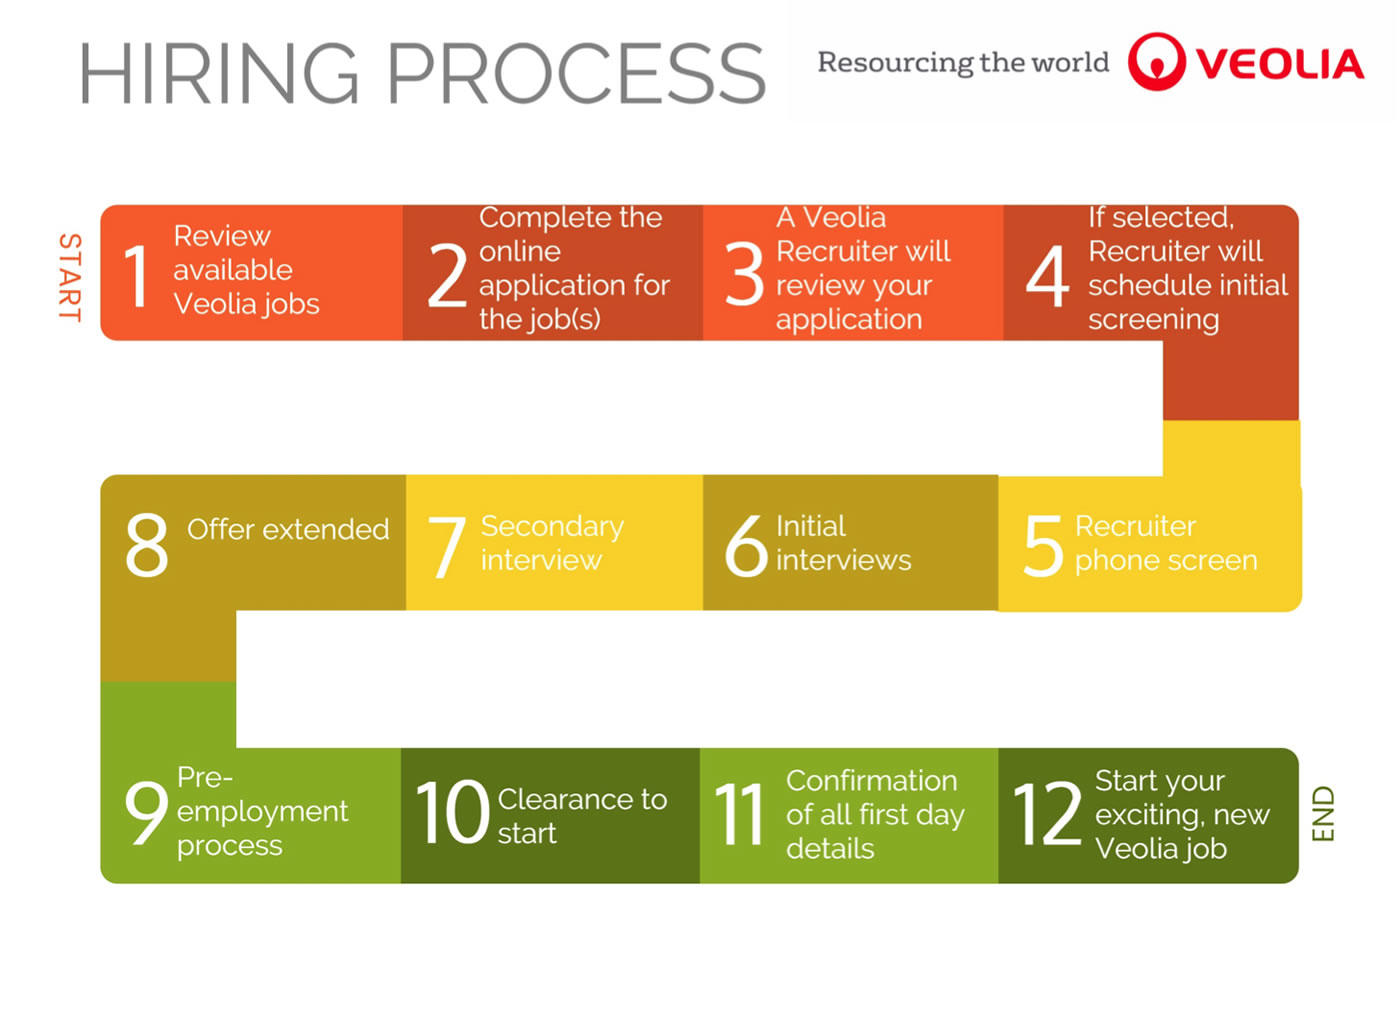 Hiring Process Infographic - Veolia